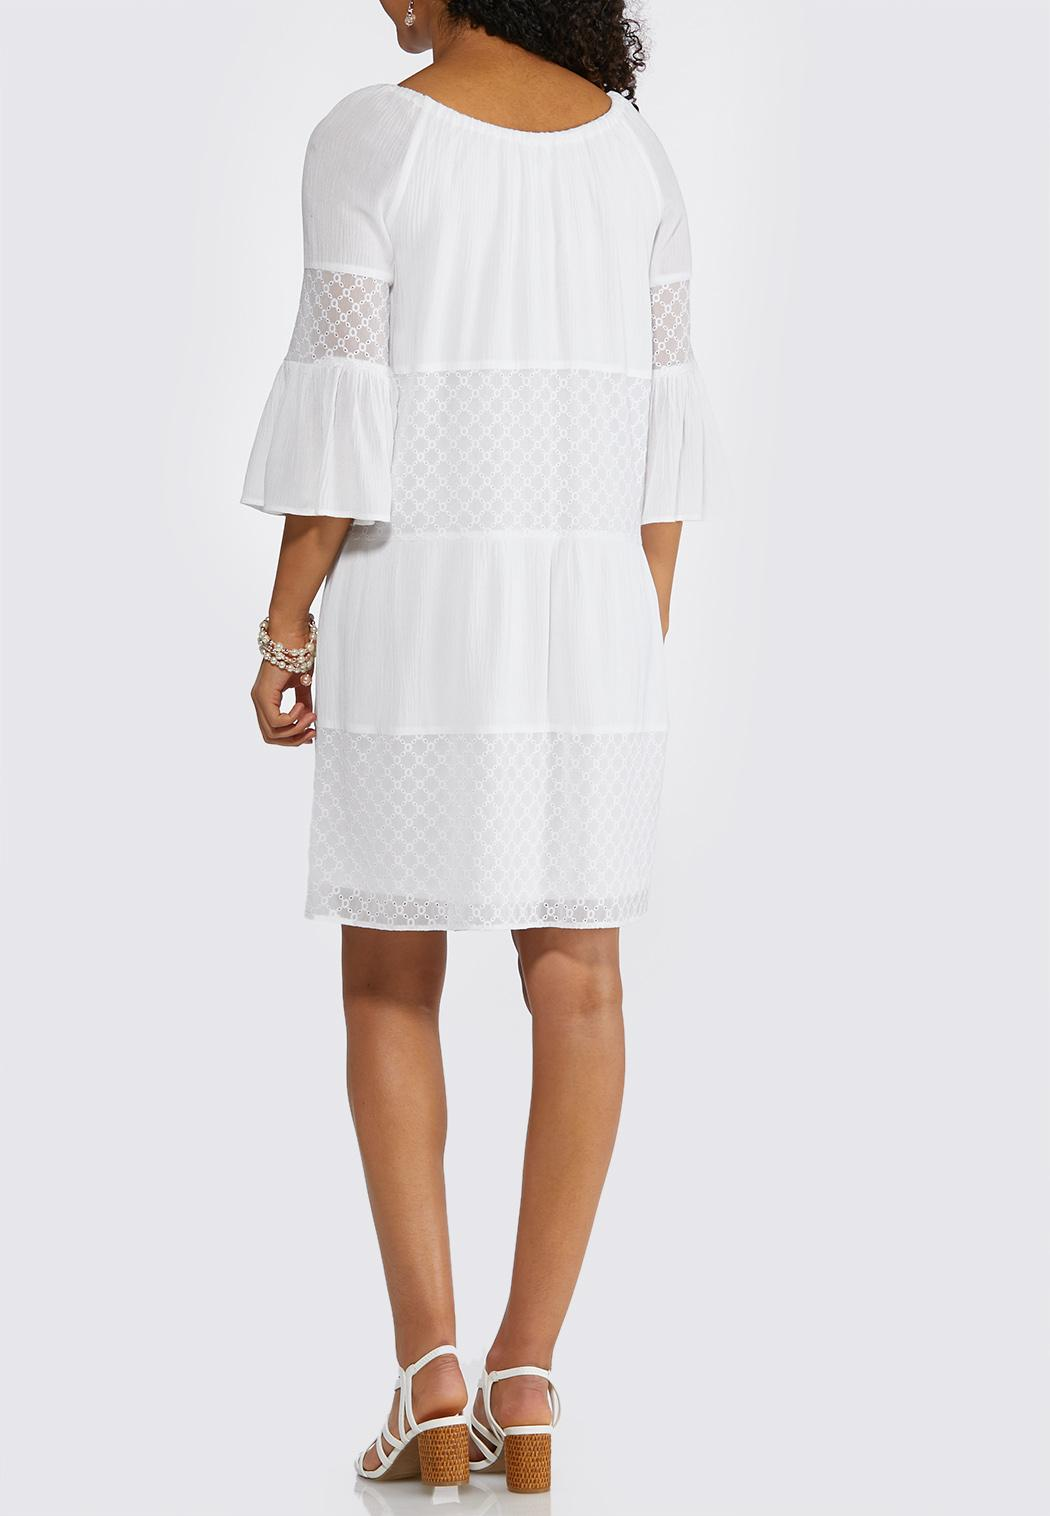 Plus Size Bell Sleeve Eyelet Peasant Dress A-line & Swing Cato Fashions